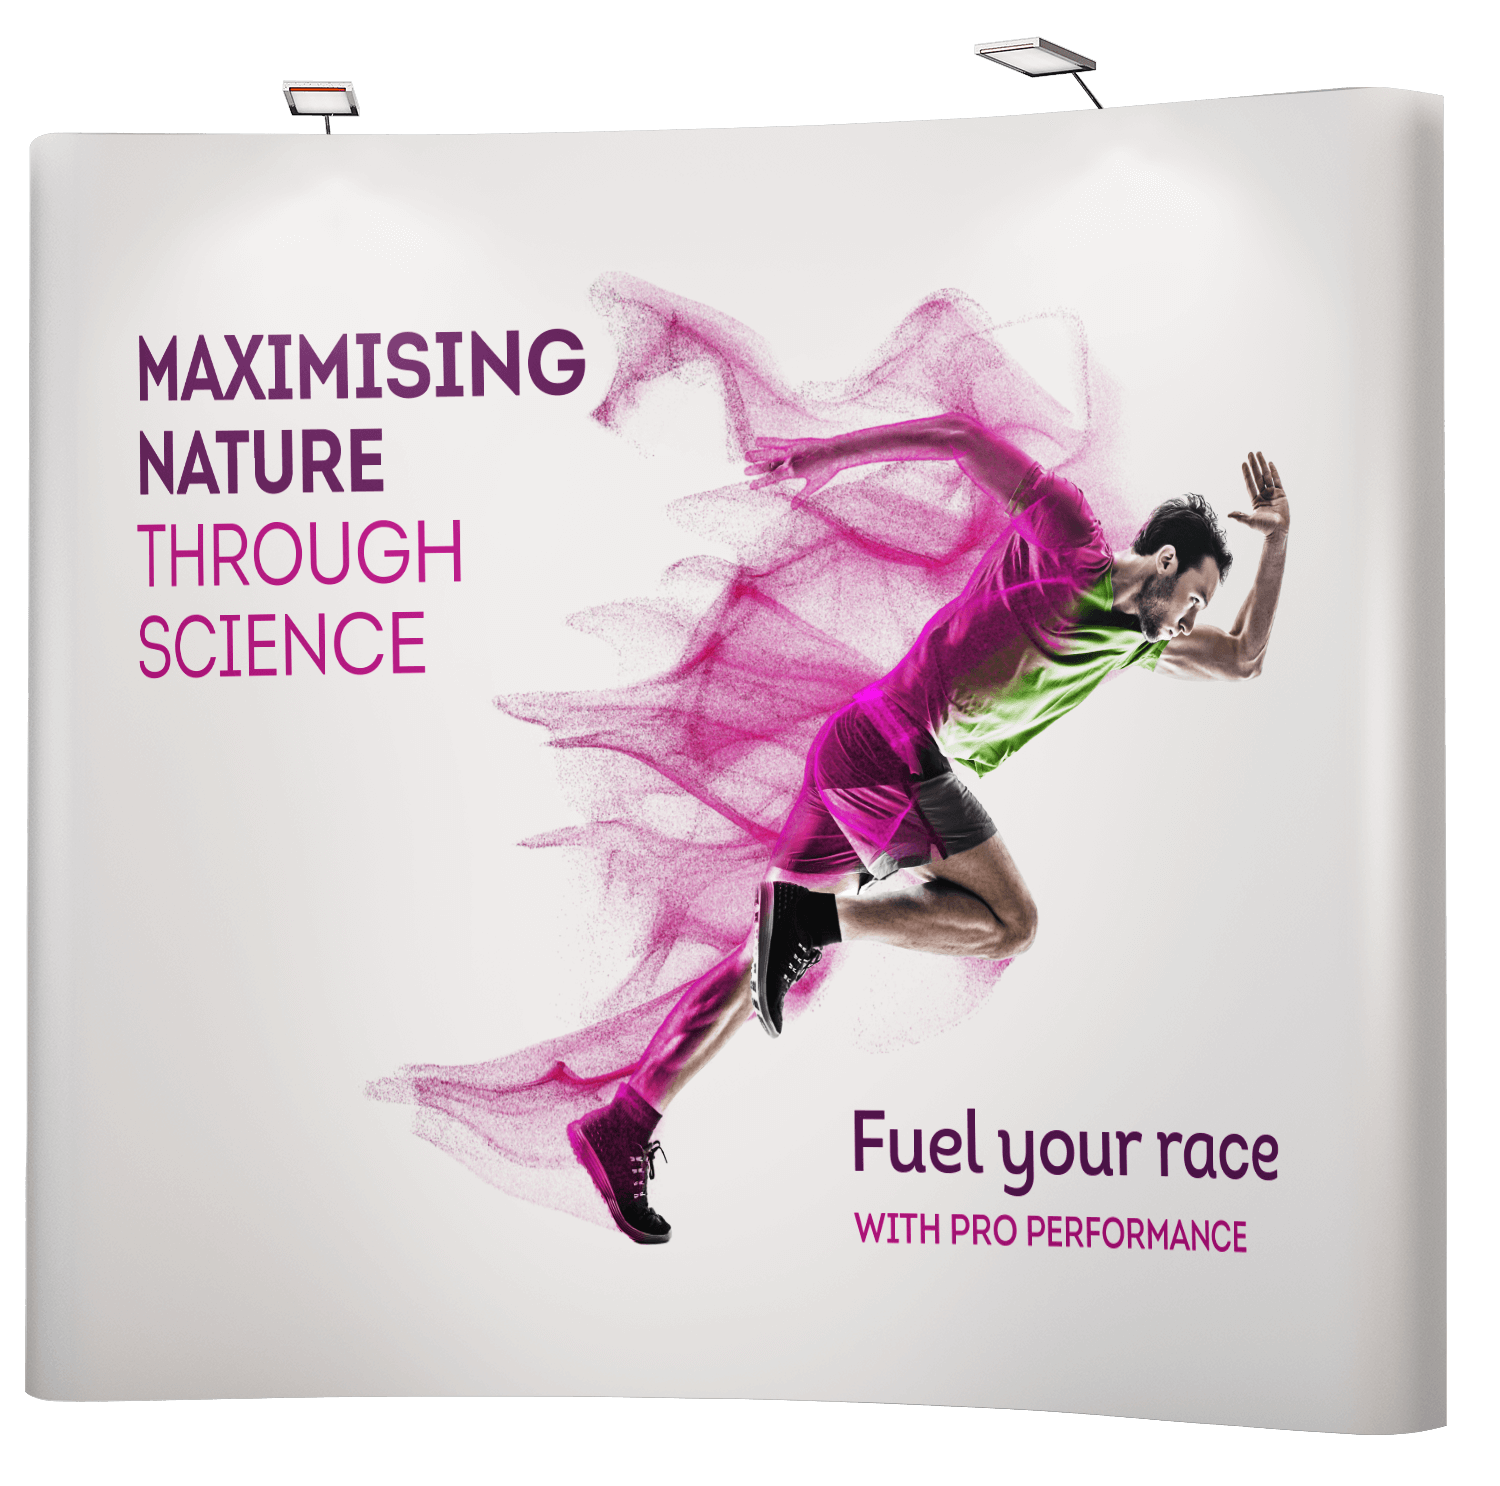 Large format and exhibition graphics design for sports supplement manufacturer